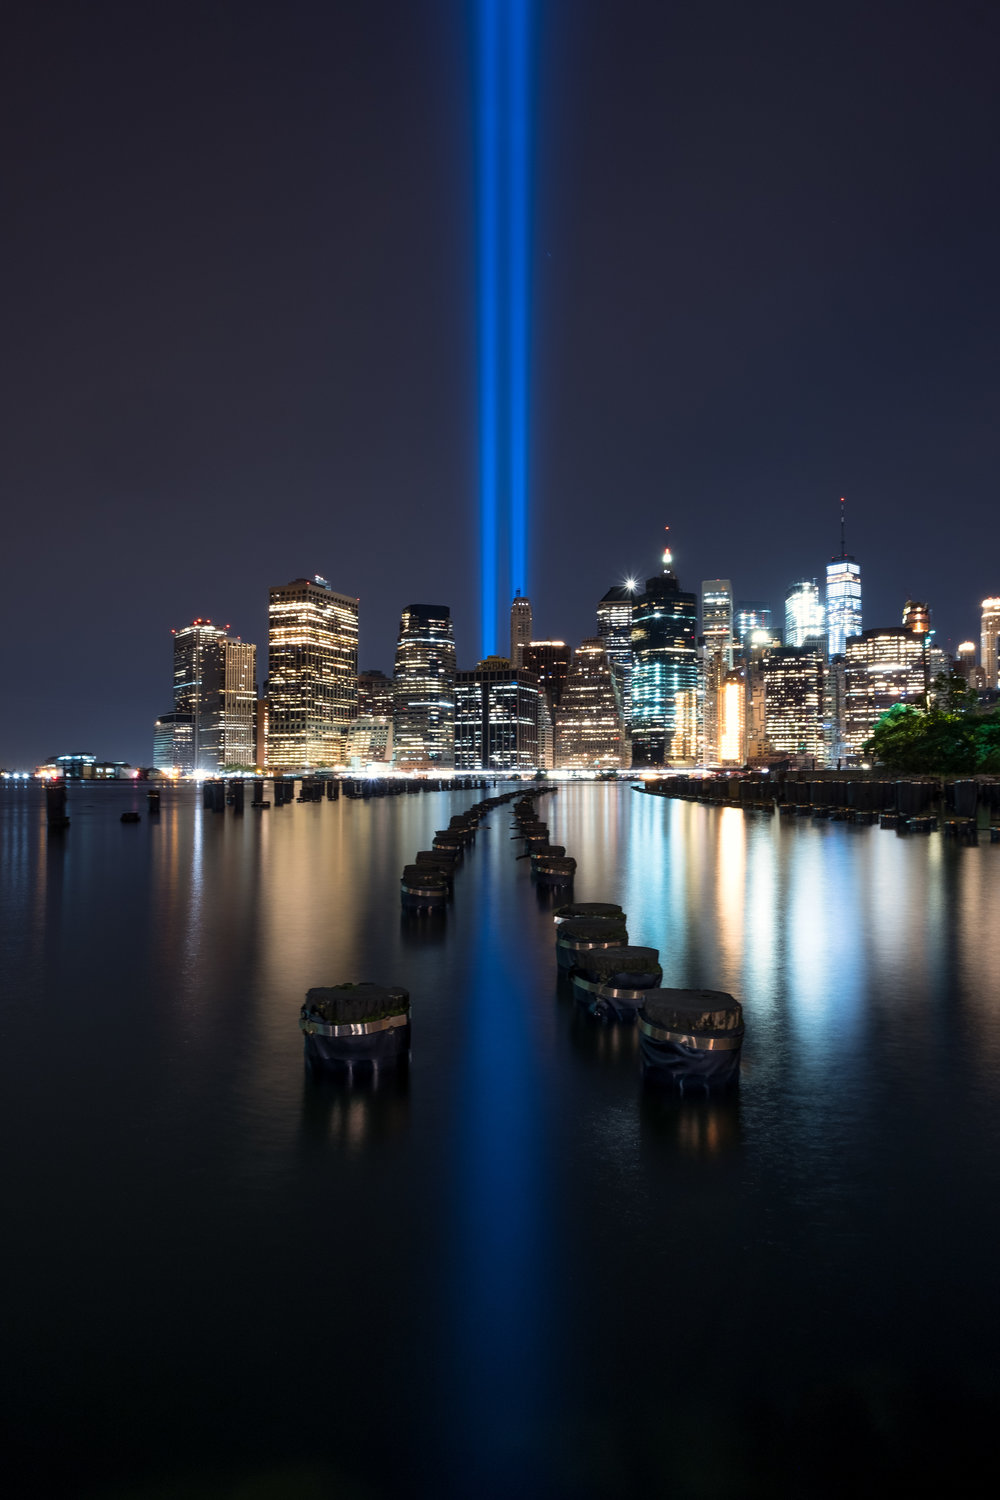 """Tribute in Light"" September 11, 2017. Brooklyn, New York Fujifilm X-Pro2, 14mm, f/11, 45 seconds, ISO 200"